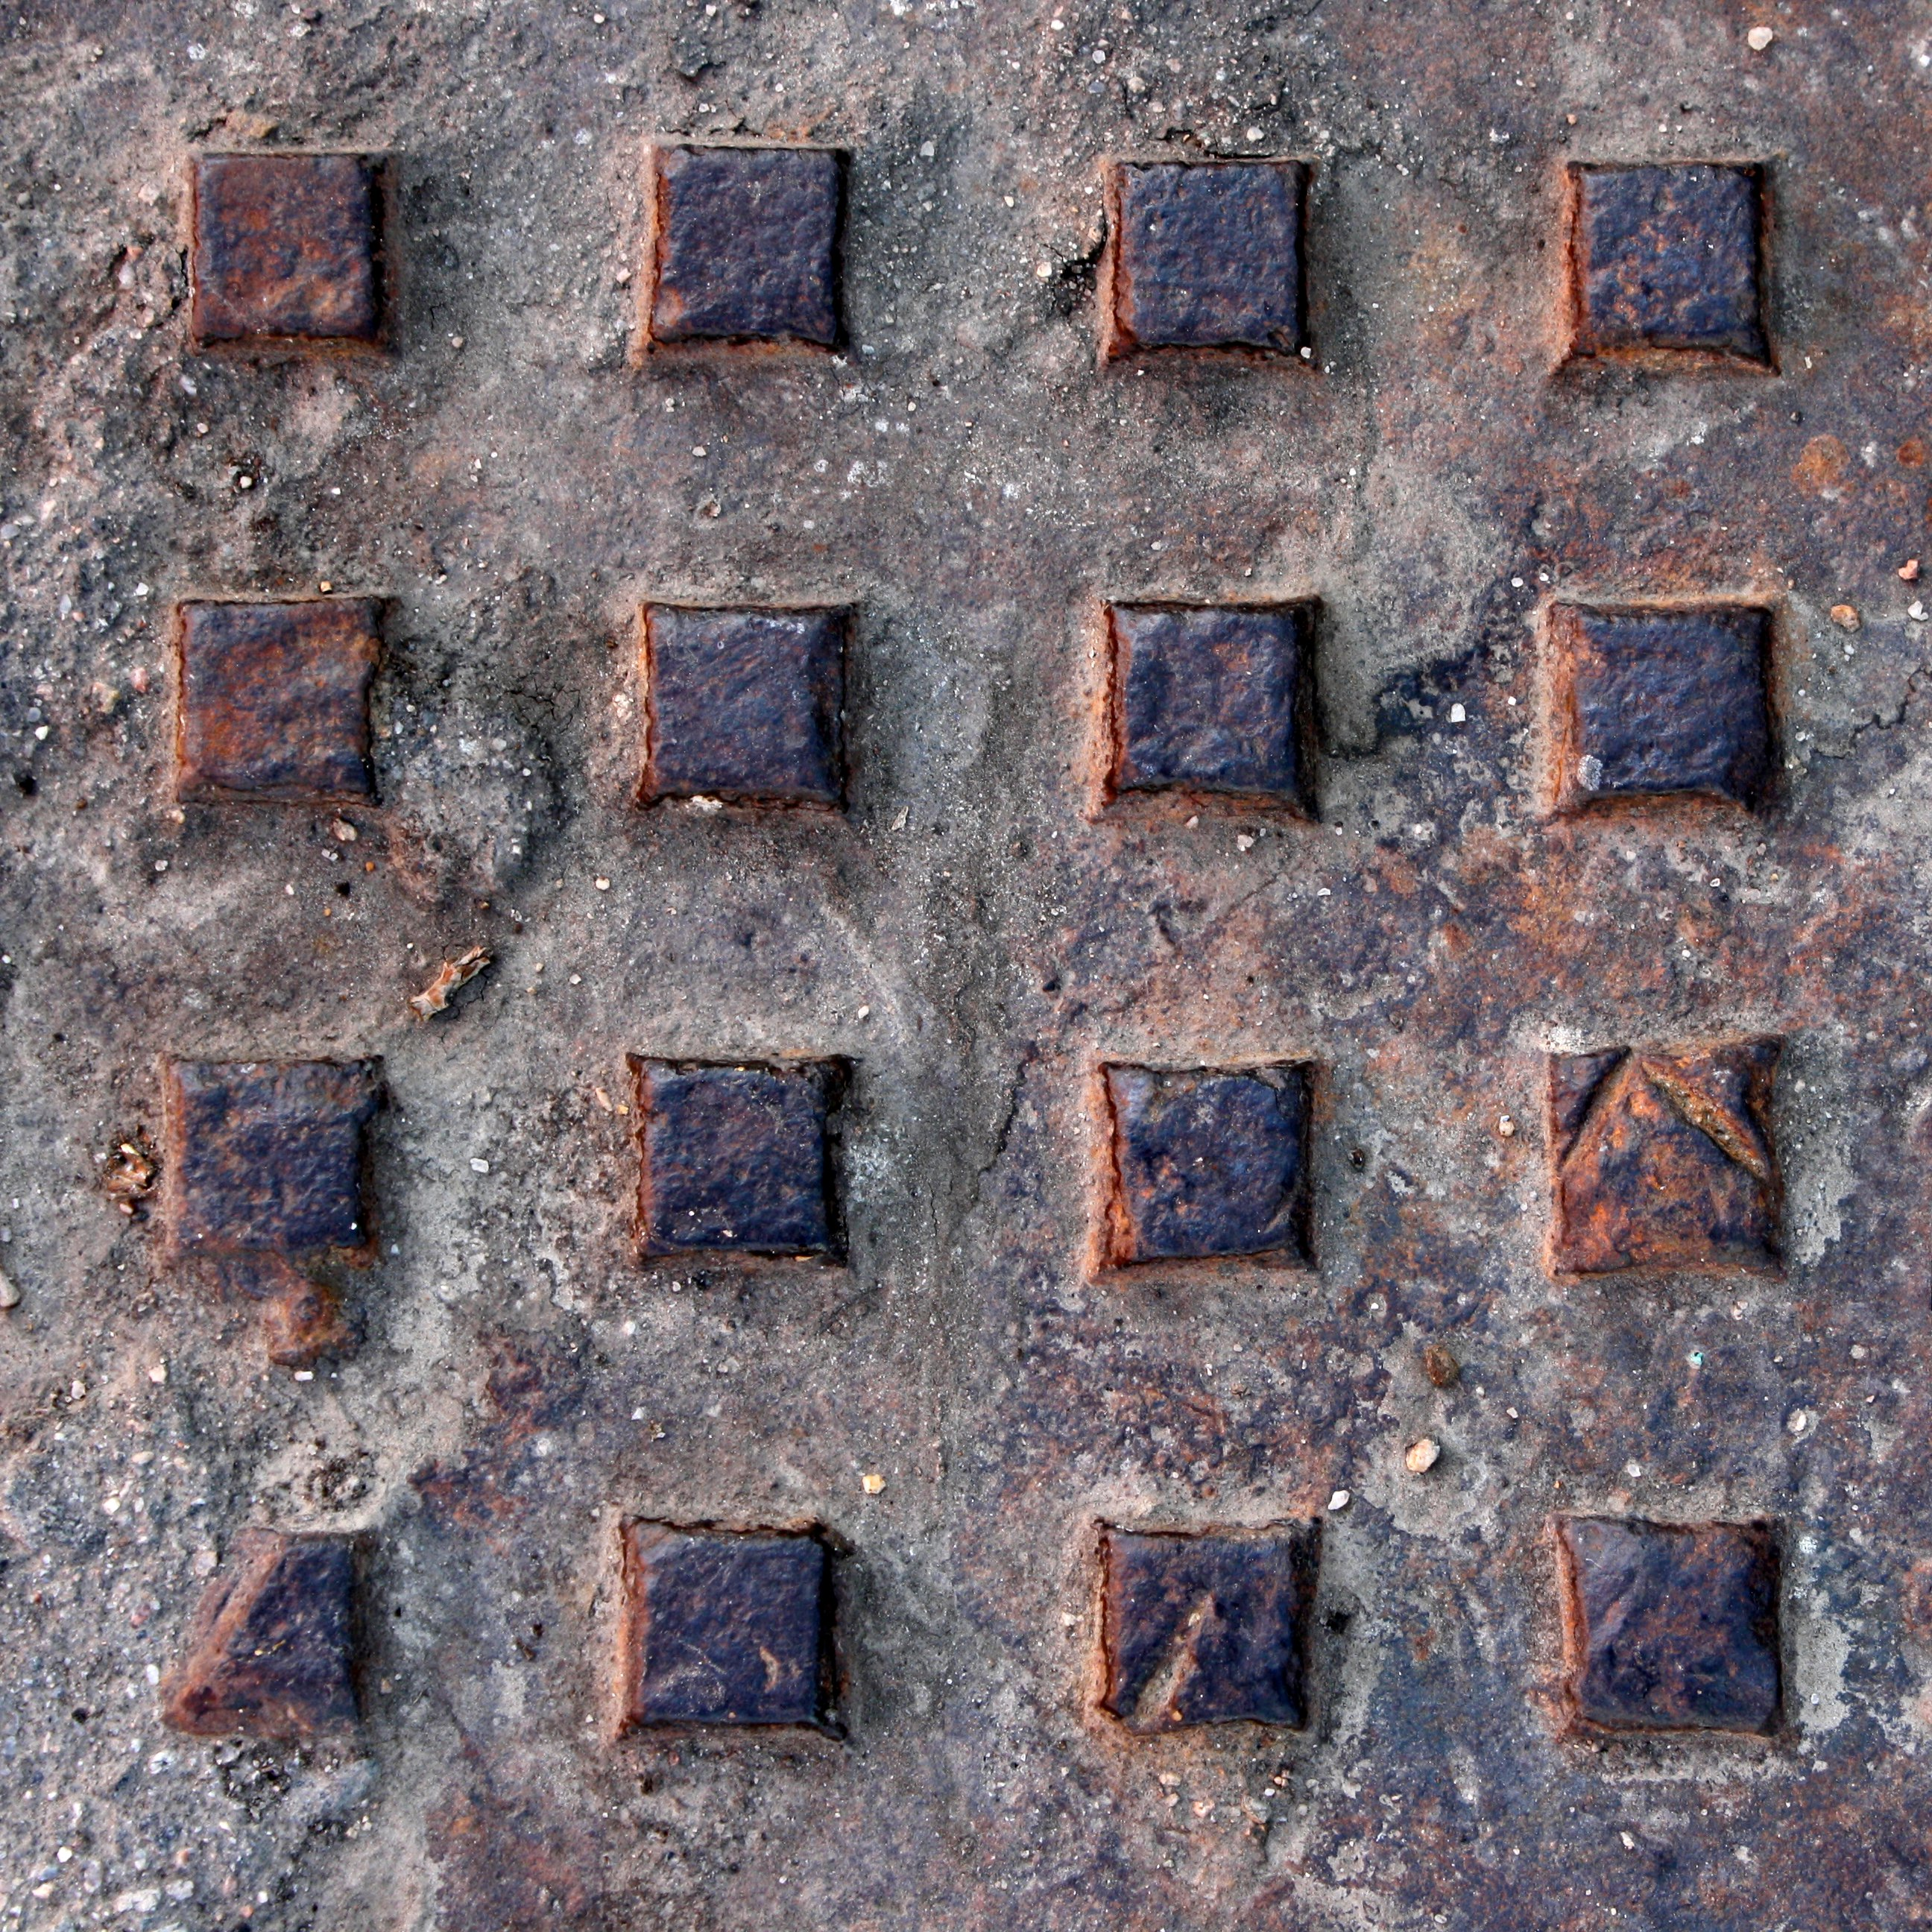 Rusty tin craft supplies - Rusty Tin Craft Supplies Rusty Tin Craft Supplies Rusted Metal Manhole Cover Texture Download